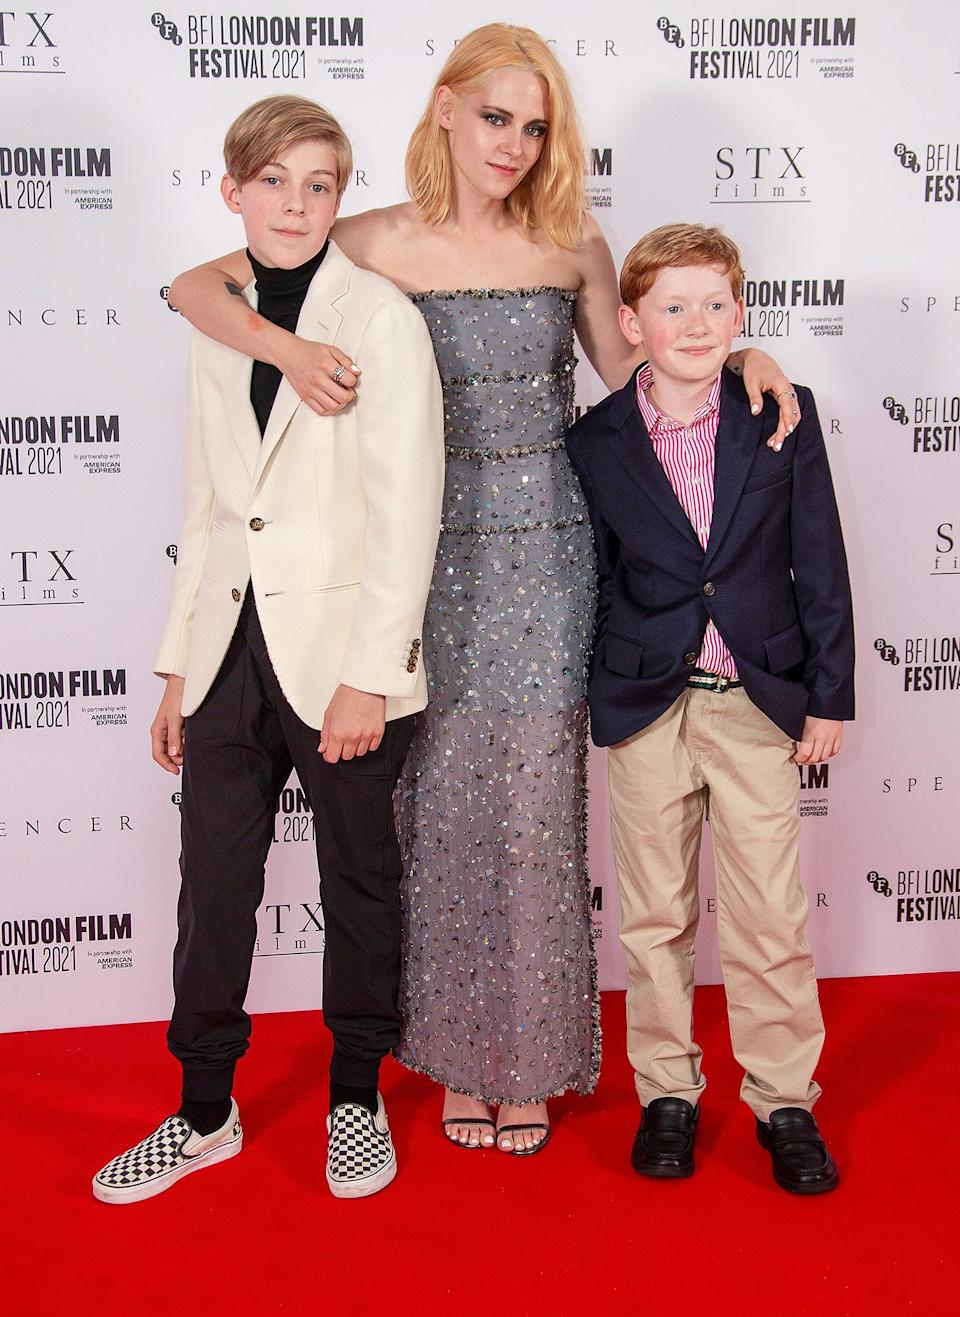 <p>Kristen Stewart poses with her onscreen children — Jack Nielen and Freddie Spry — at the <em>Spencer</em> premiere during the 2021 BFI London Film Festival on Oct. 7.</p>